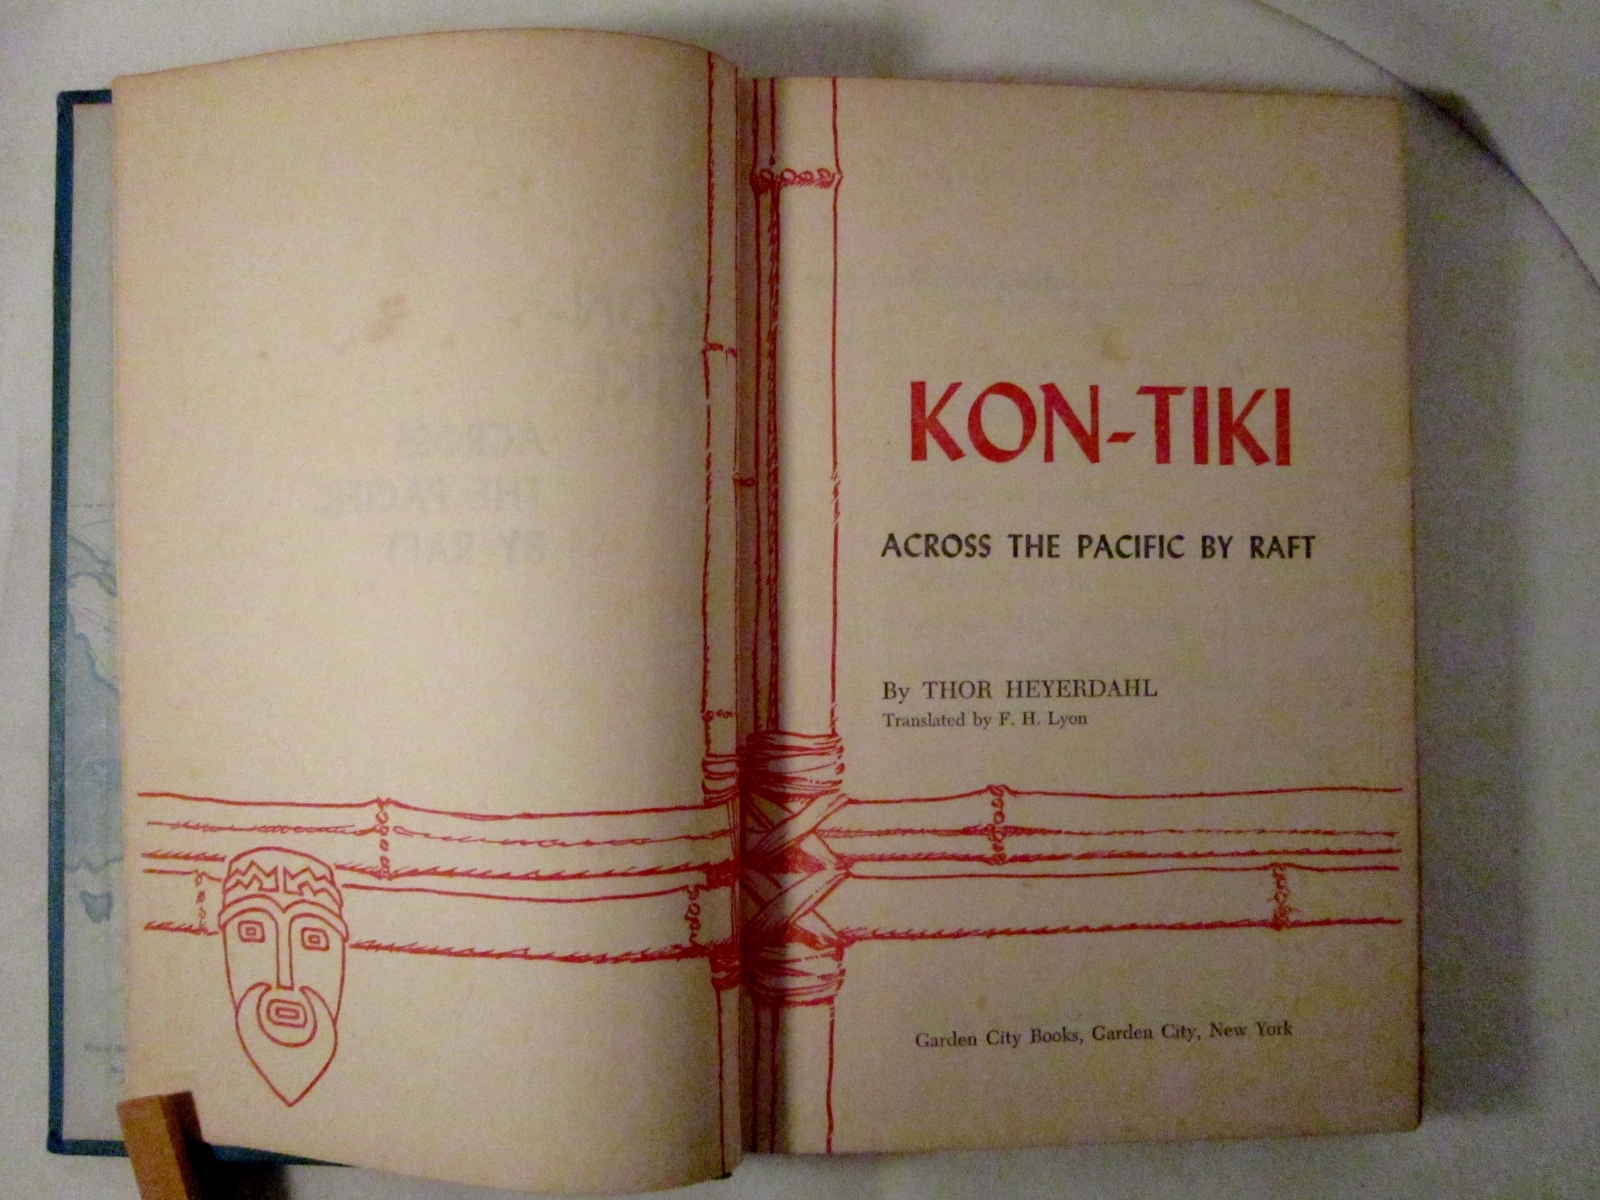 an analysis of the book kon tiki by thor heyerdahl April 30, 2002: when thor heyerdahl died earlier this month, he left behind   glaciers of norway, recalled thor years later in his book fatu-hiva: back   below: in 1947, thor hayerdahl sails from peru to polynesia aboard the kon tiki,   and payload, and analyze the performance and safety of the rocket.